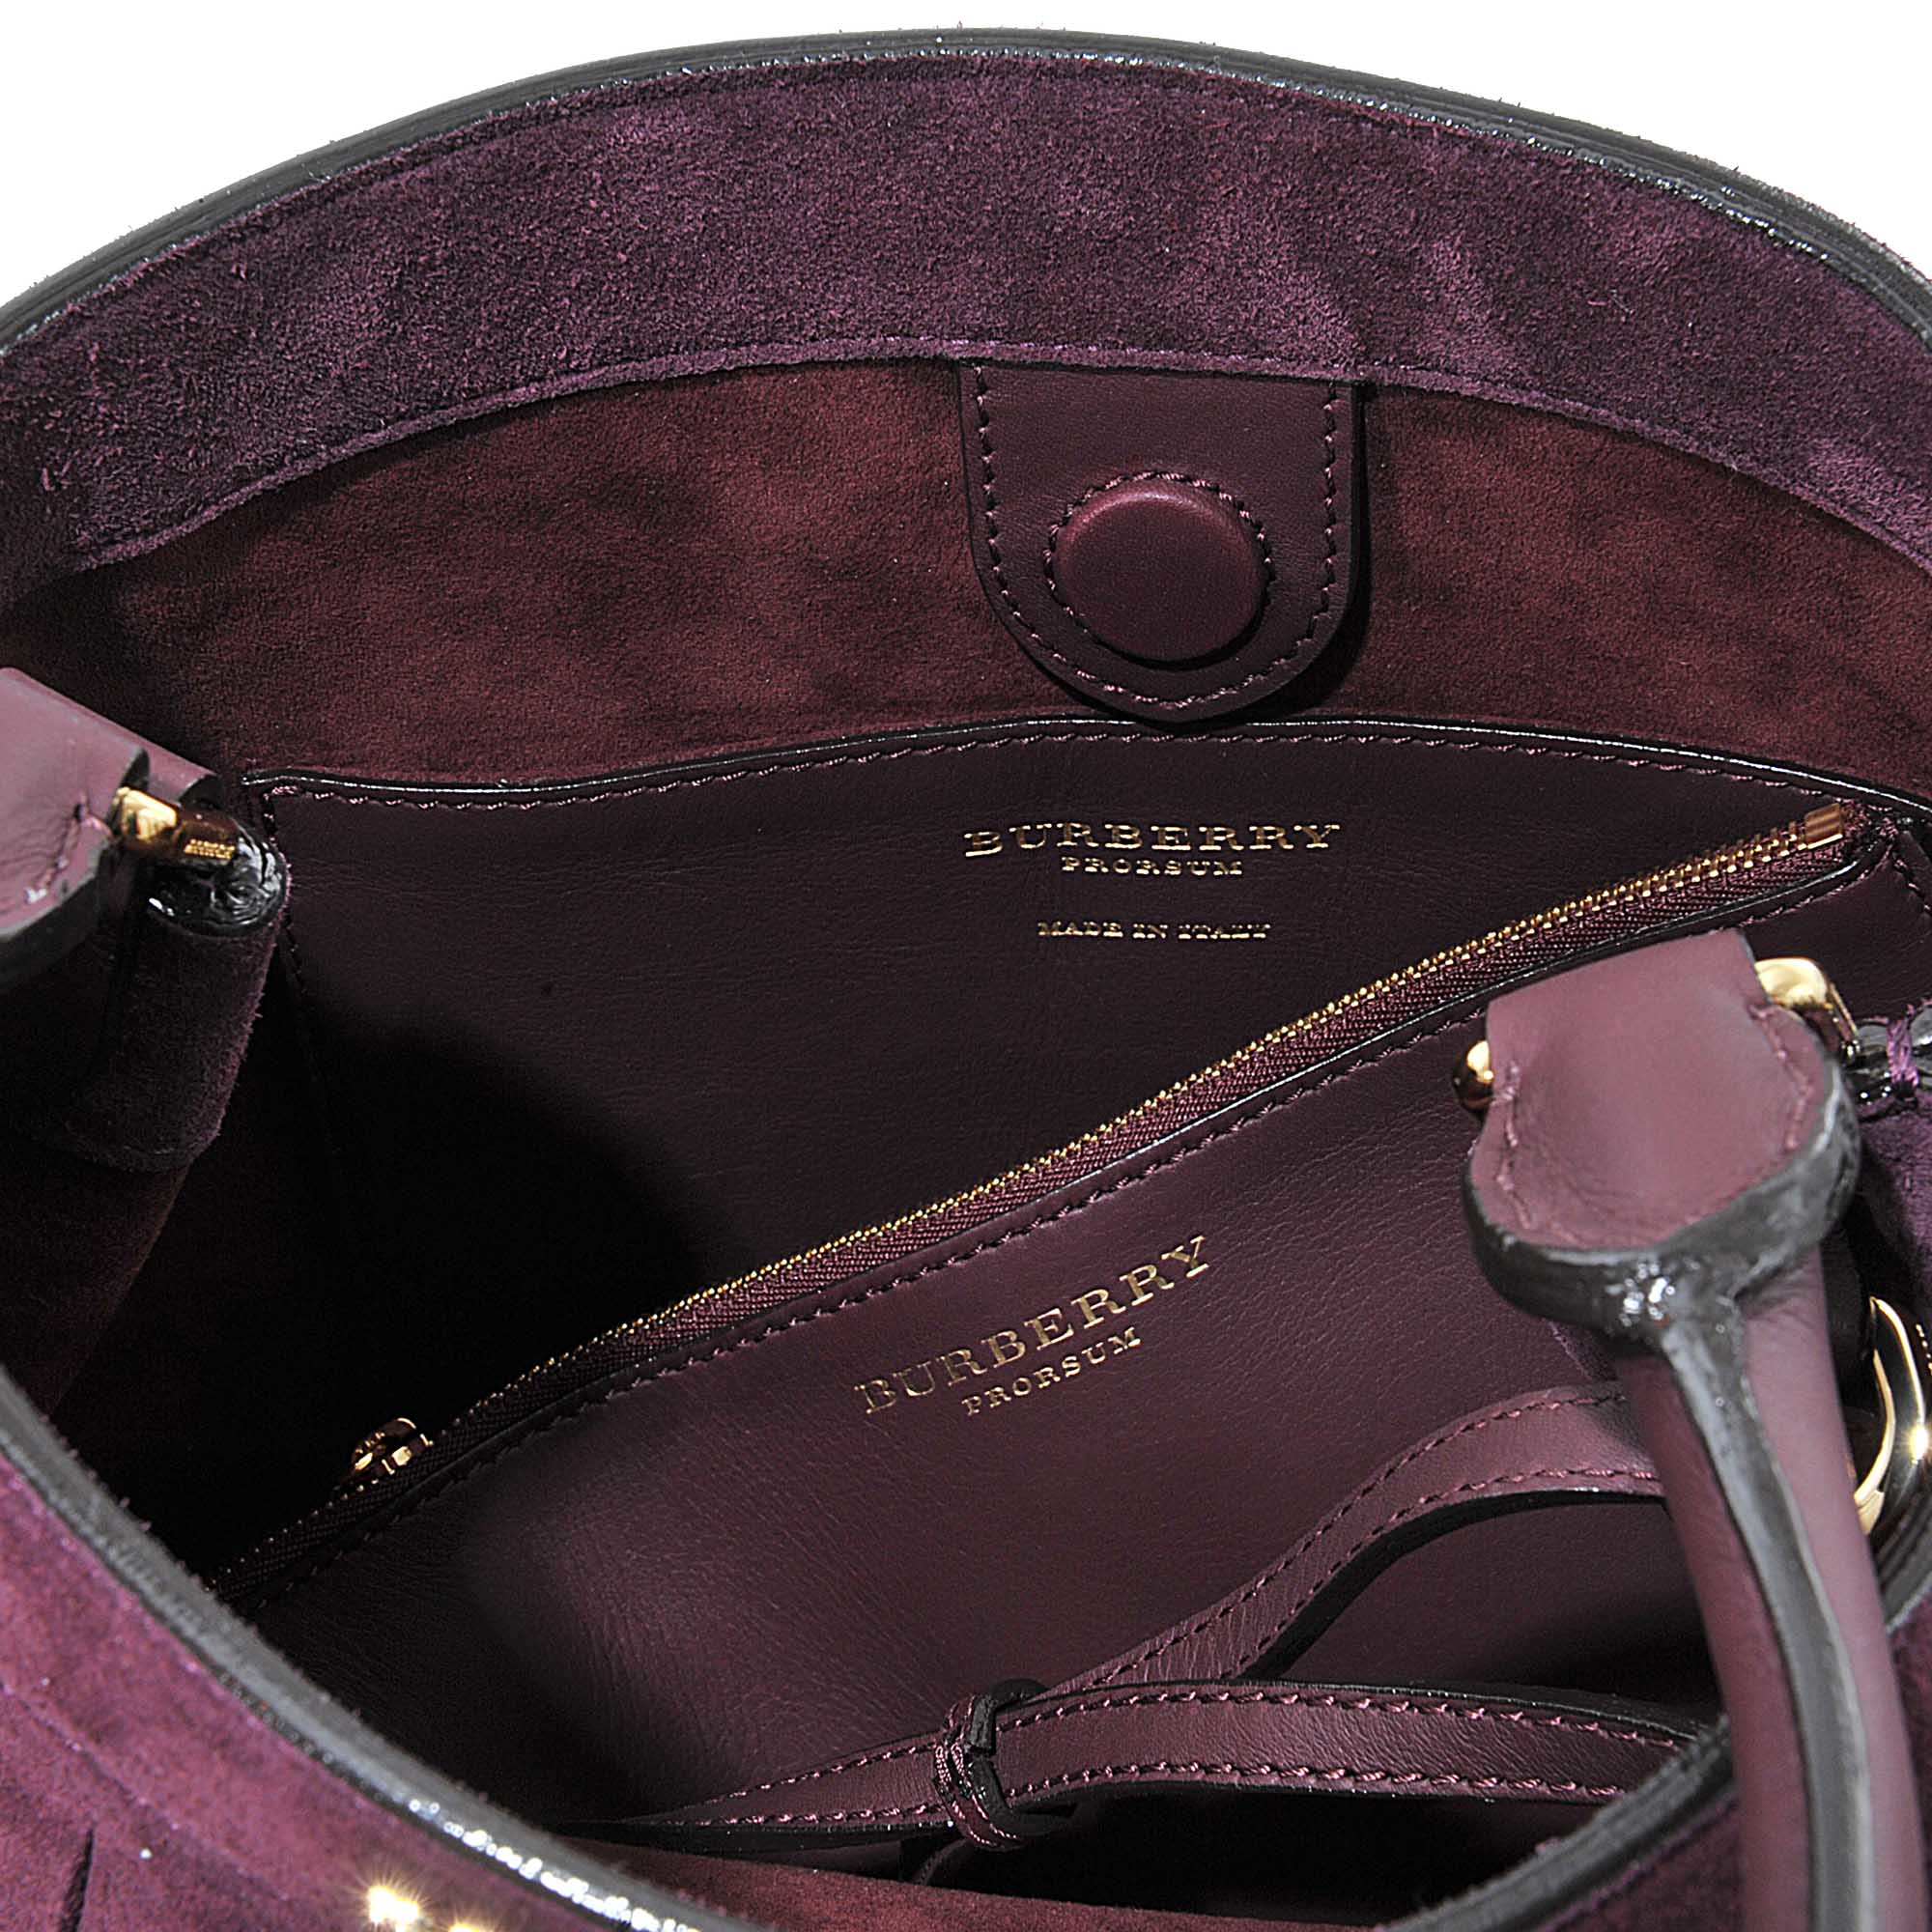 94e2180ea36 Lyst - Burberry Prorsum Suede Bucket Bag With Fringe in Purple